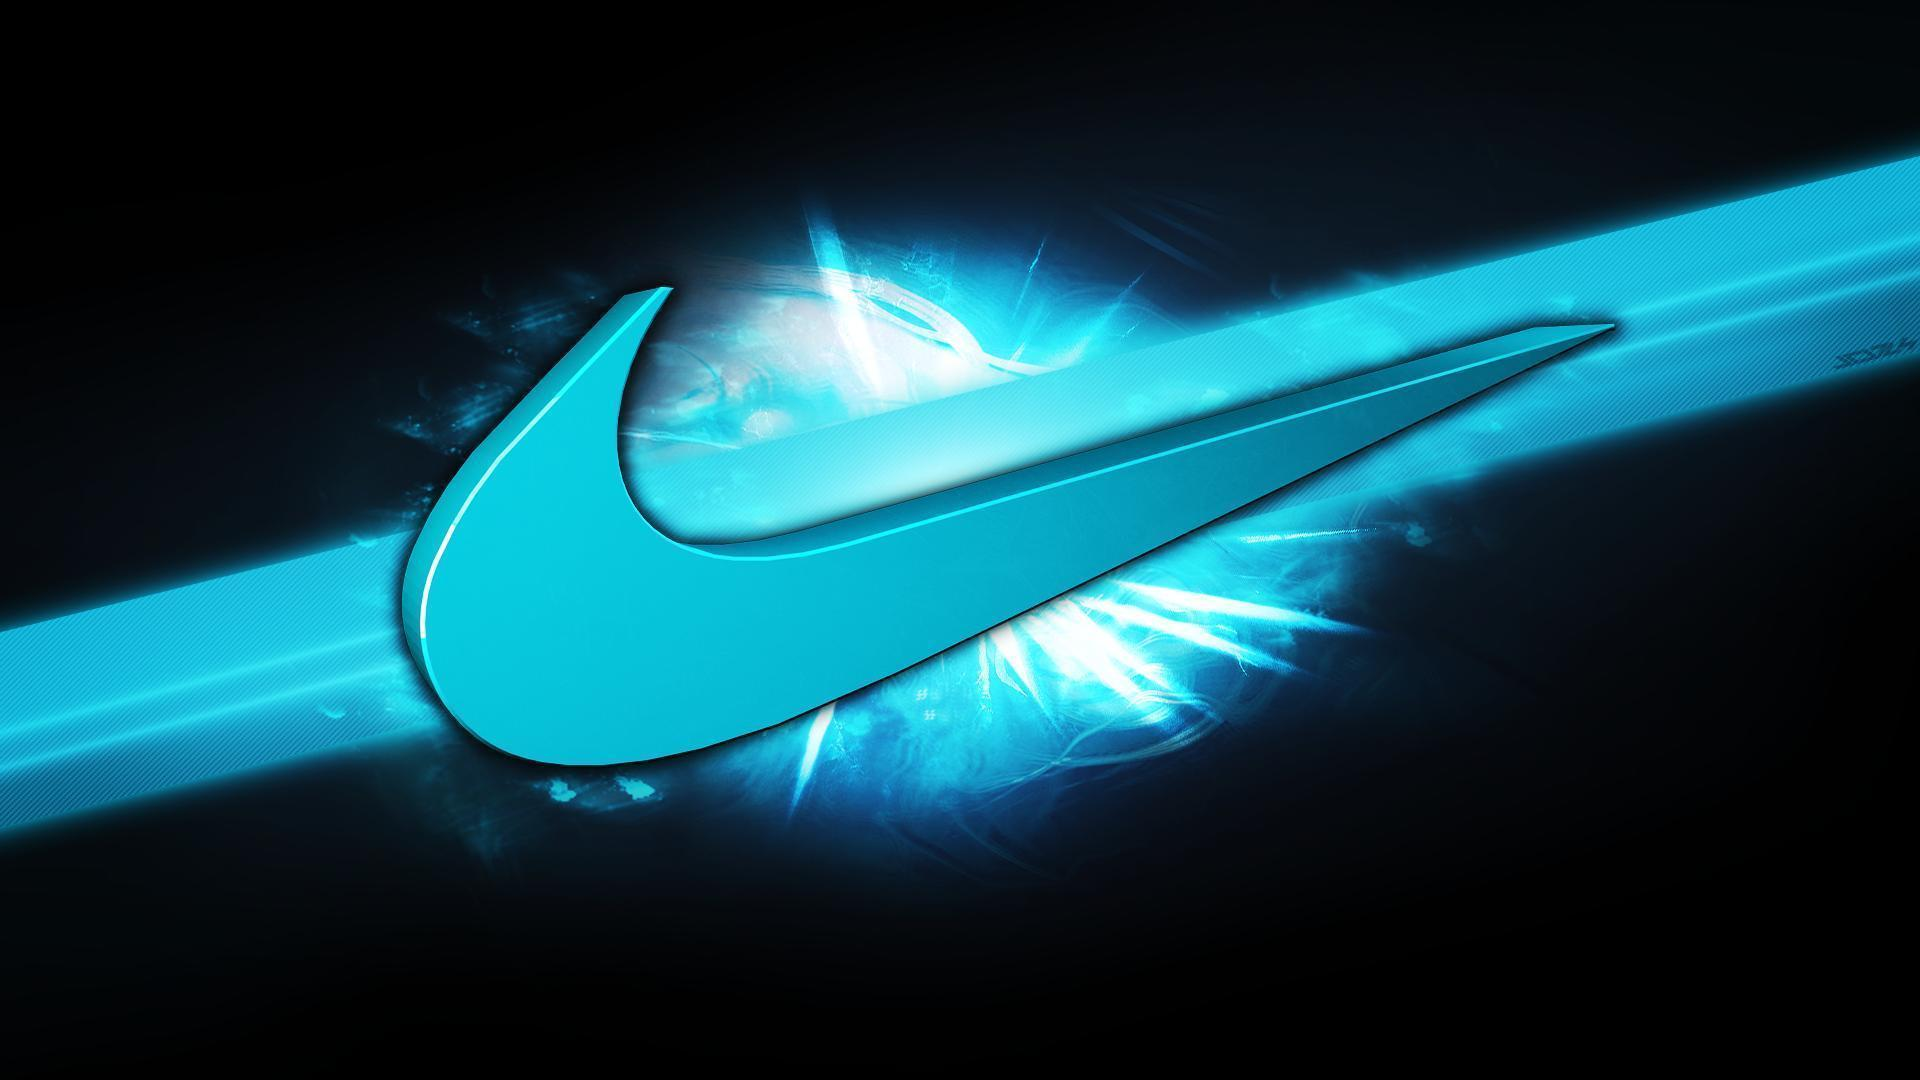 Nike Wallpapers hd wallpapers ›› Page 0